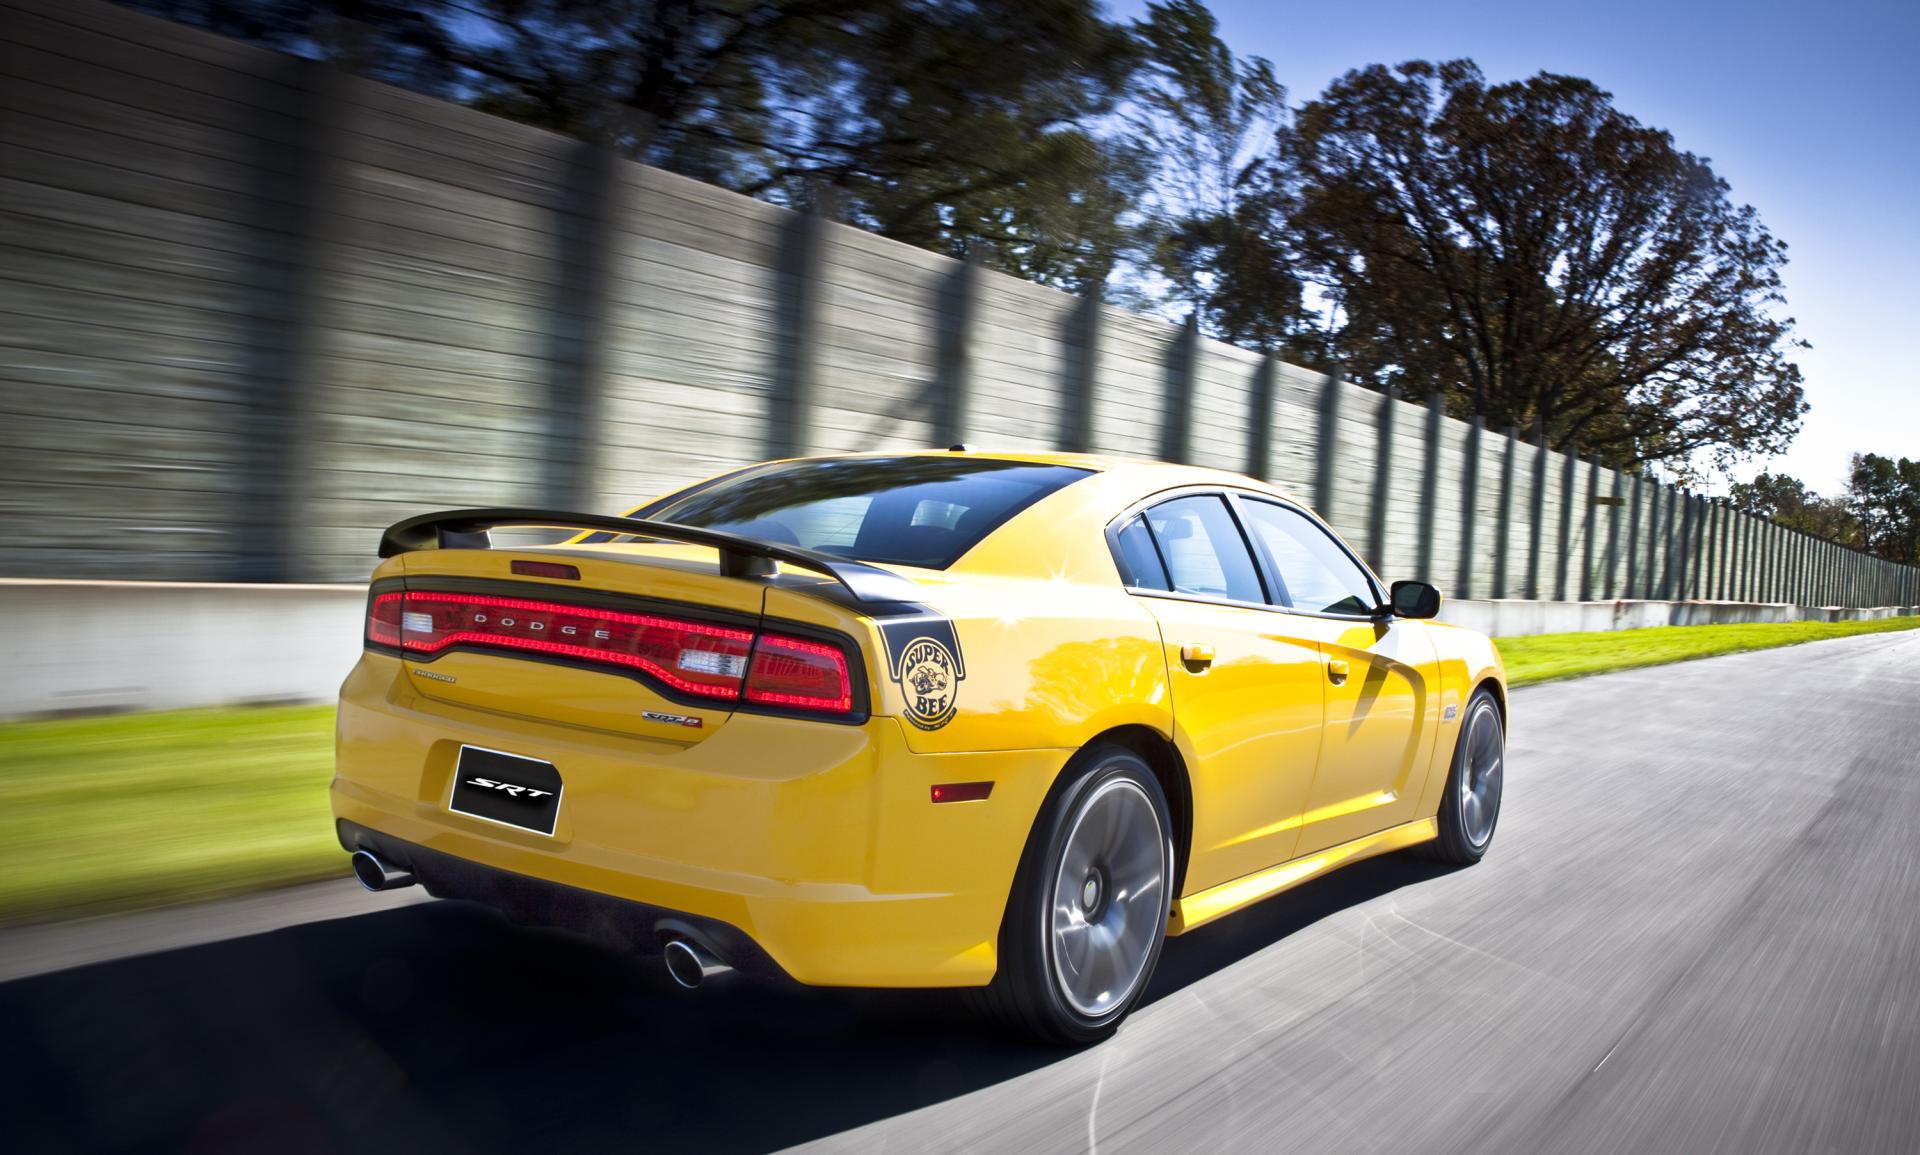 2012 Dodge Charger Srt8 Super Bee News And Information